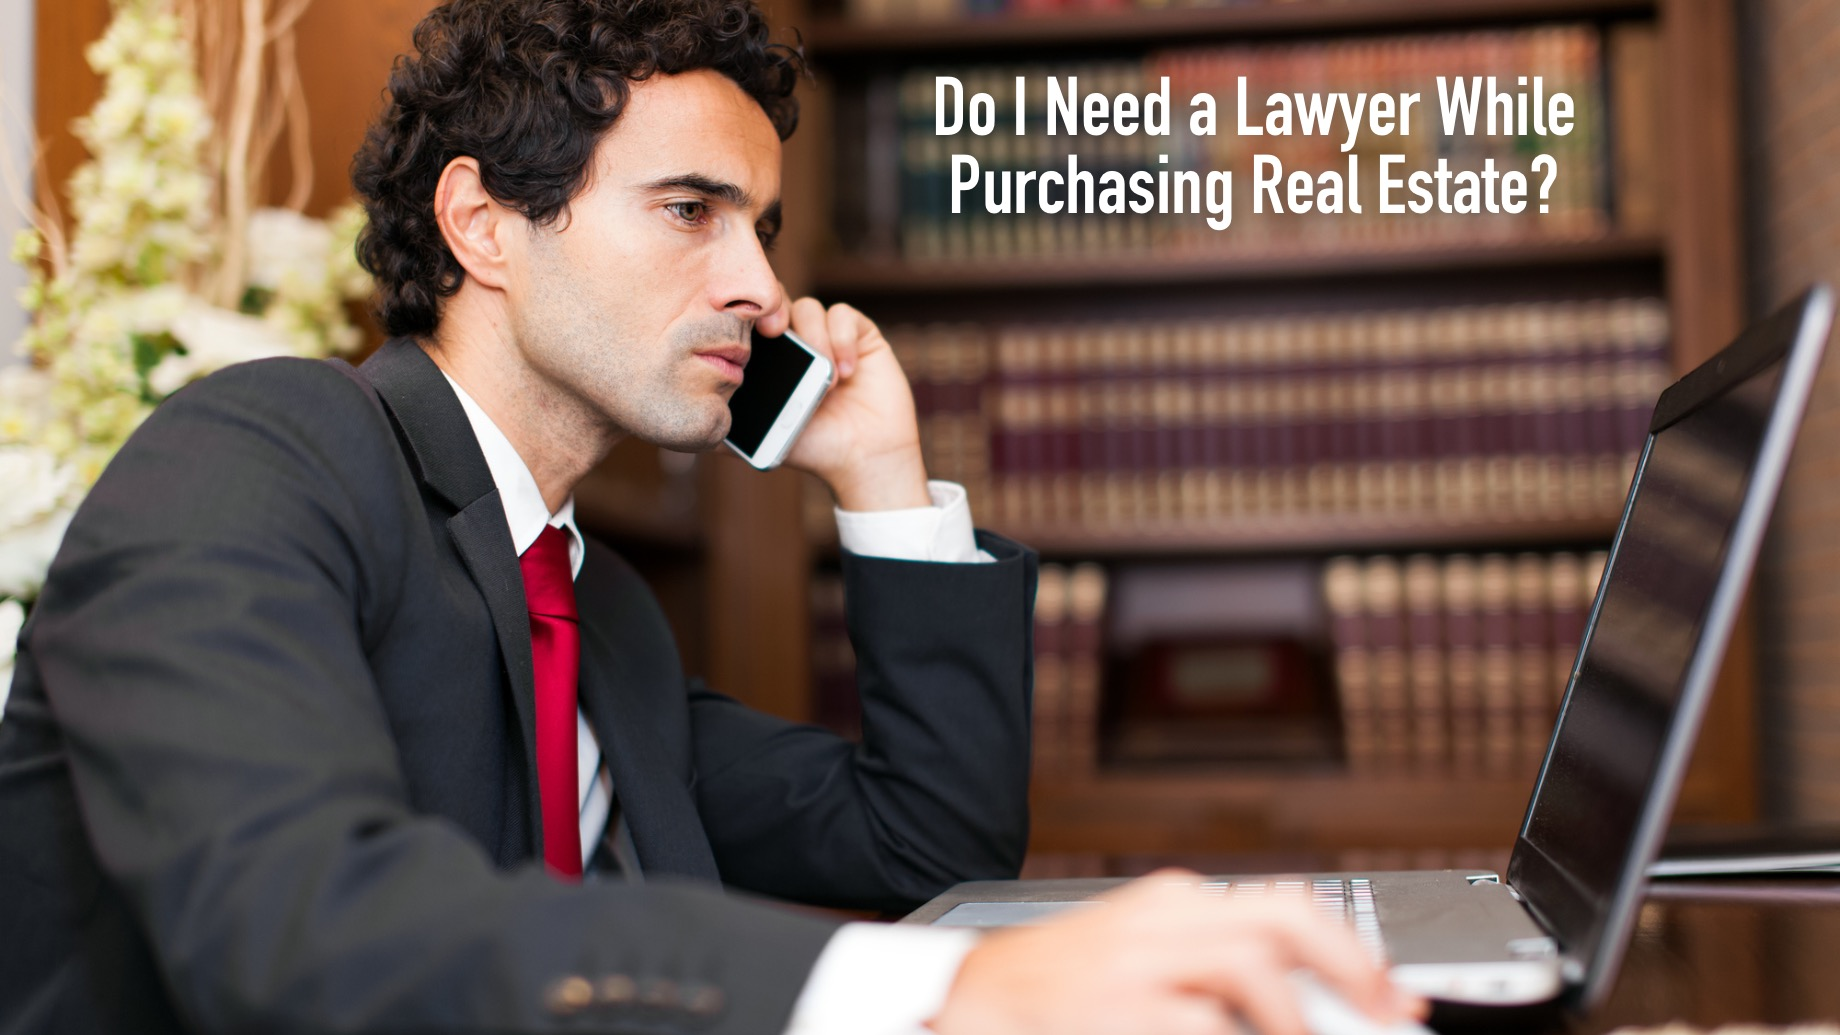 Do I Need a Lawyer While Purchasing Real Estate?